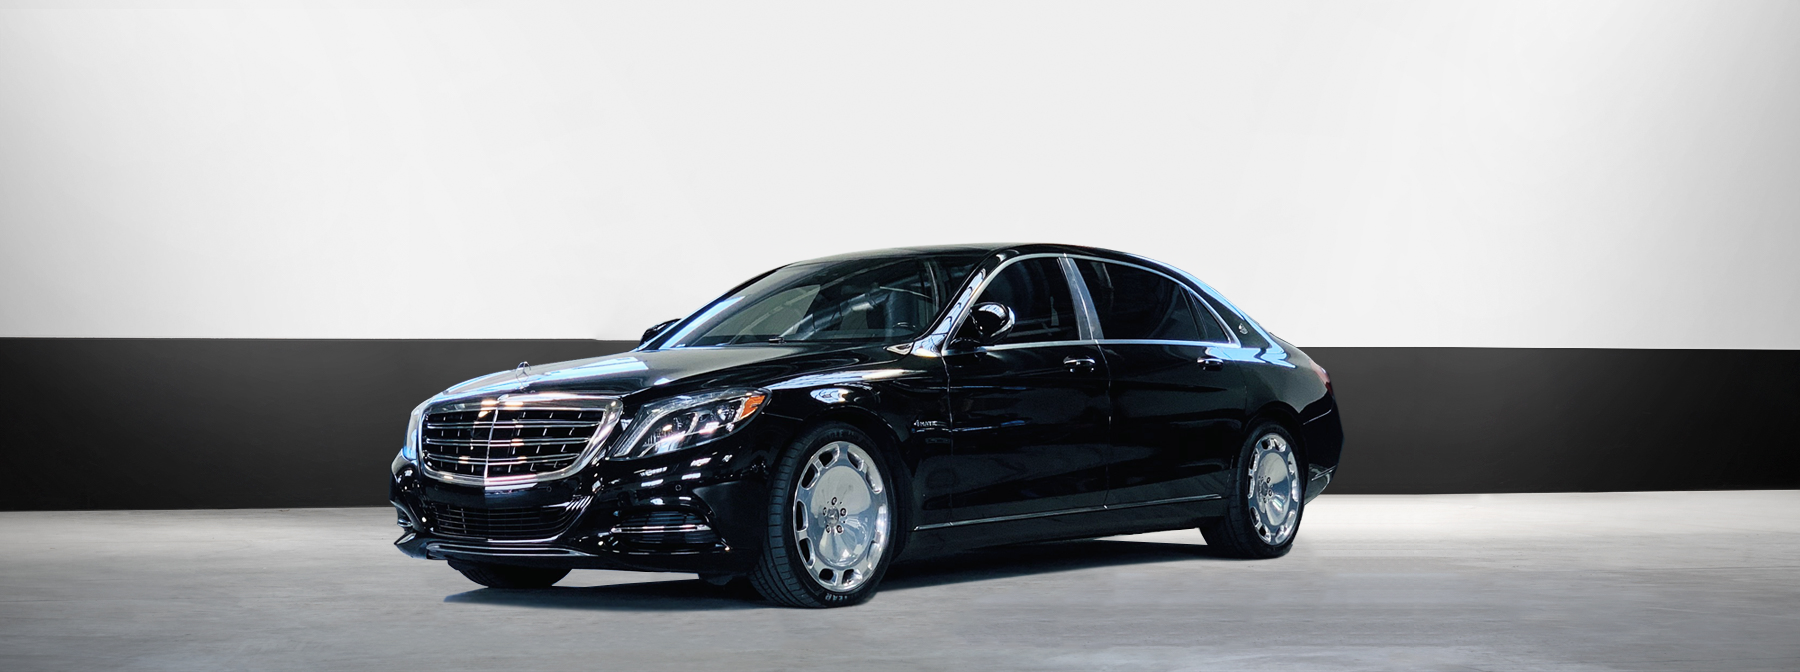 mercedes exotic car rental s550 maybach in black